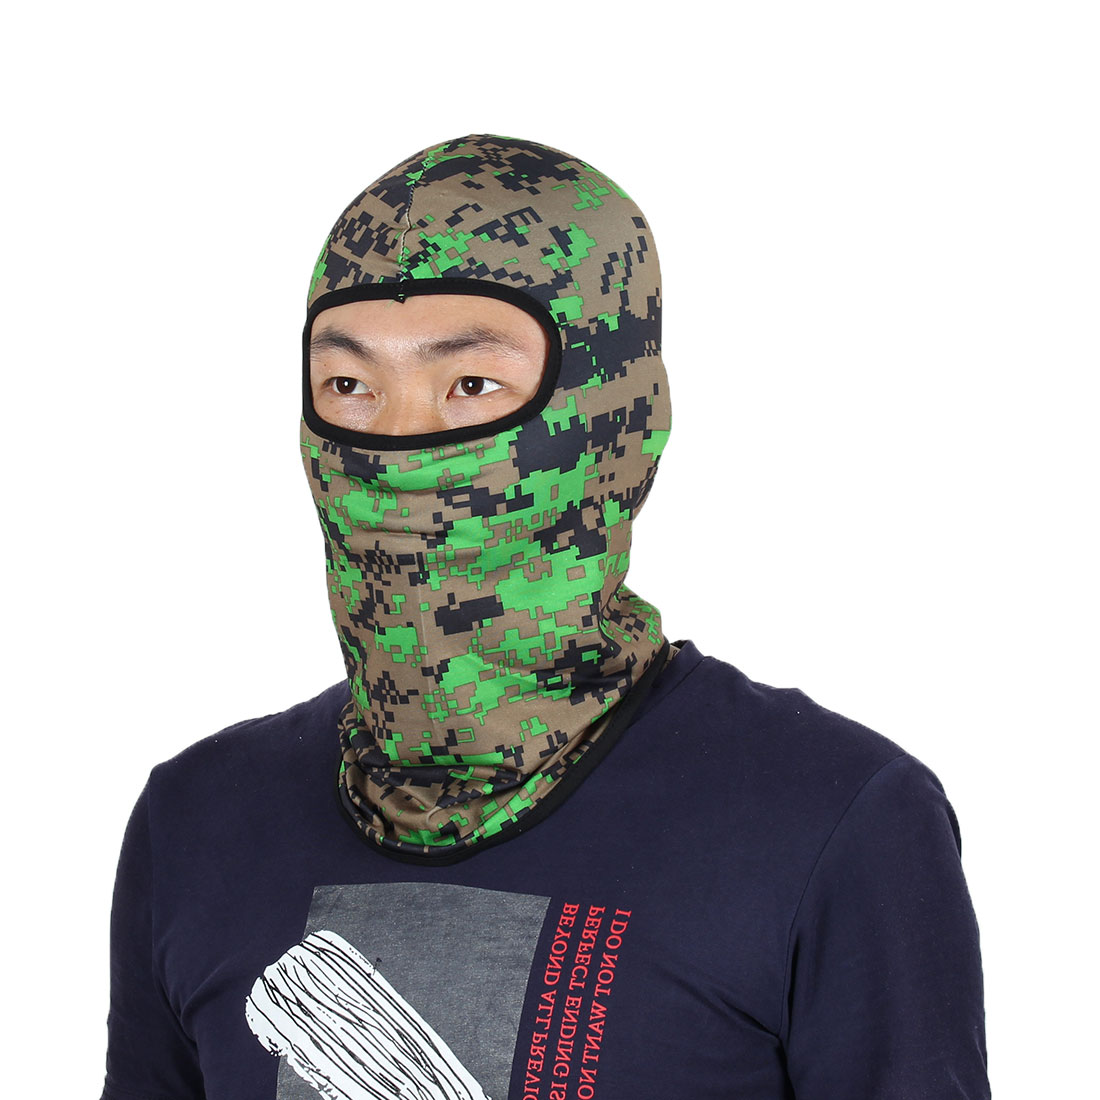 Full Face Mask Activities Sports Cycling Biking Hat Helmet Balaclava Camouflage by Unique-Bargains